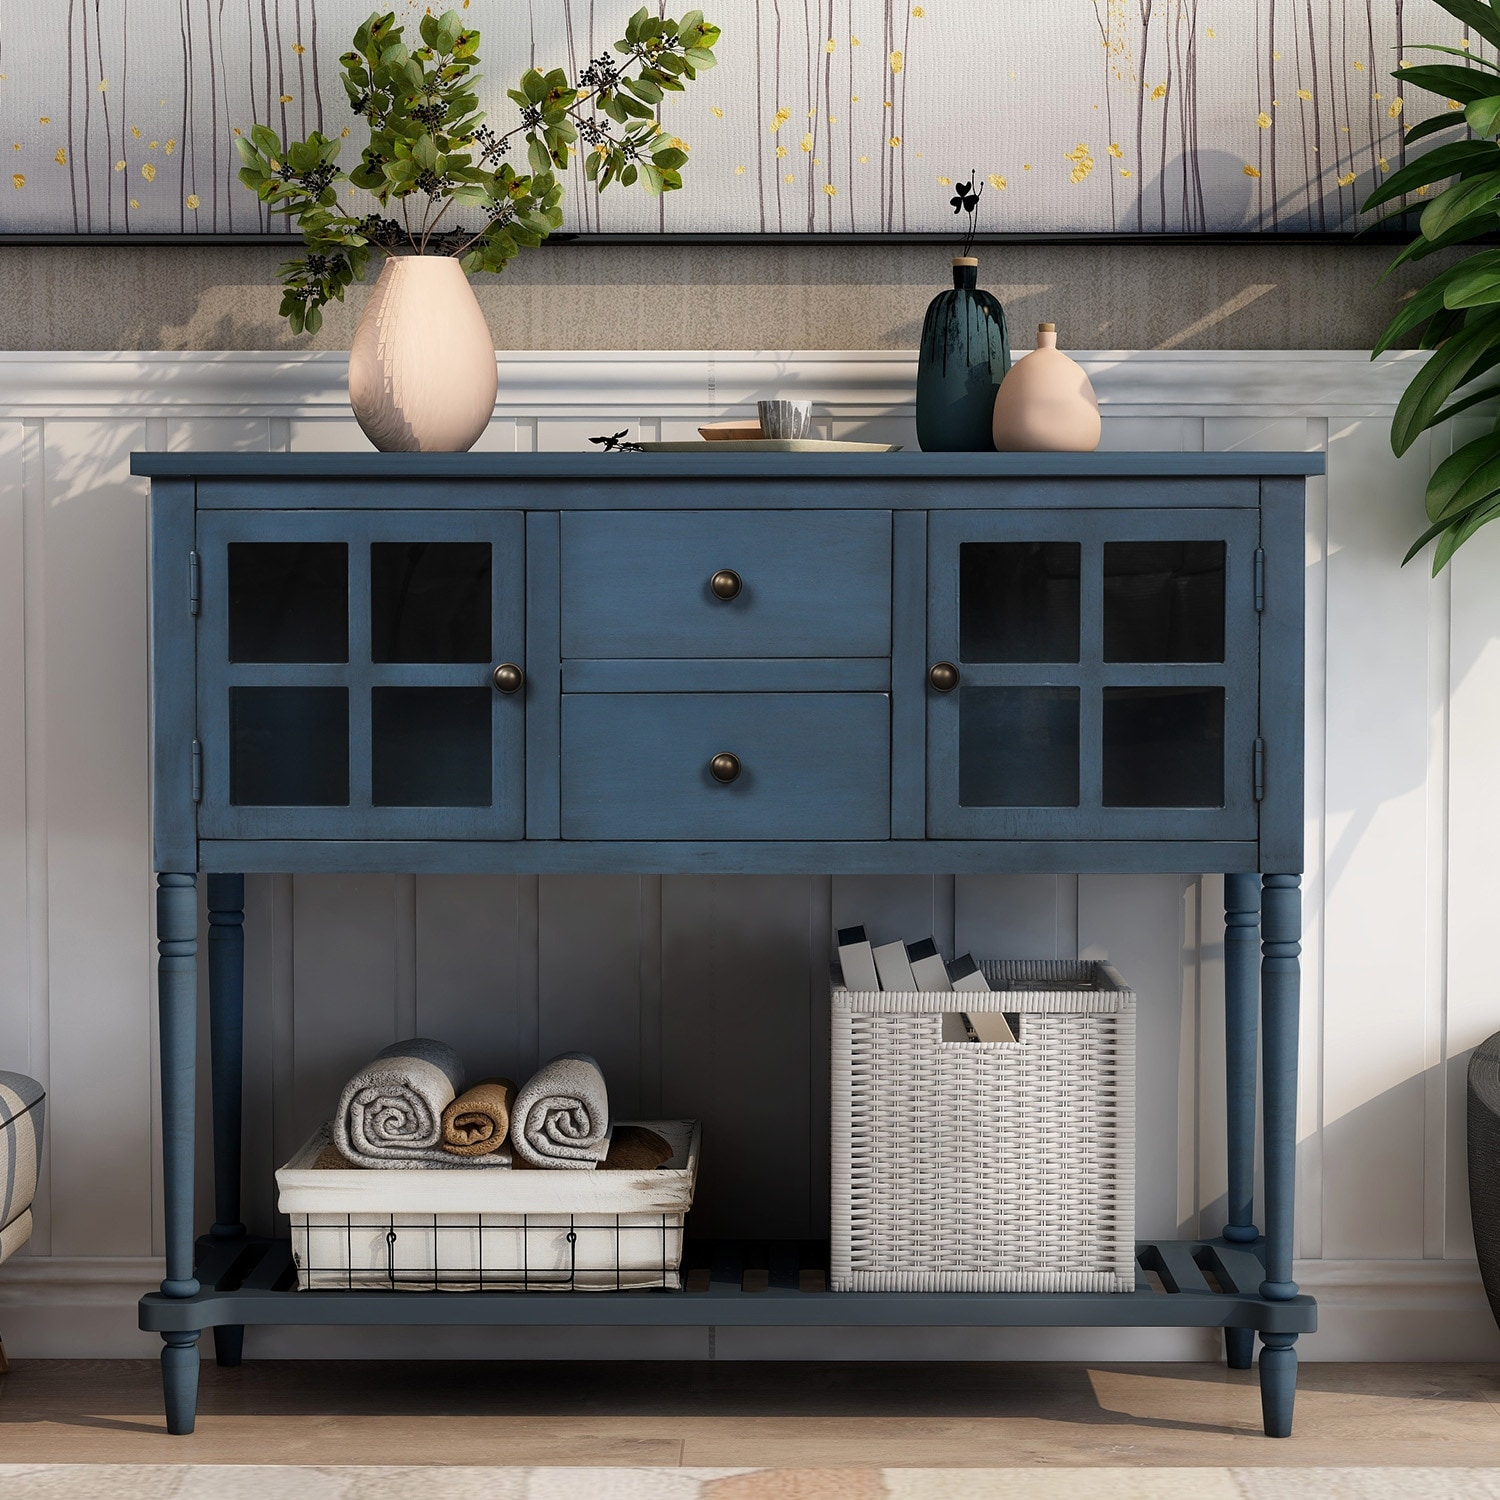 1 Cabinet and 1 Shelf for Living Room P PURLOVE Console Table Buffet Table Wood Buffet Storage Cabinet 4 Drawers